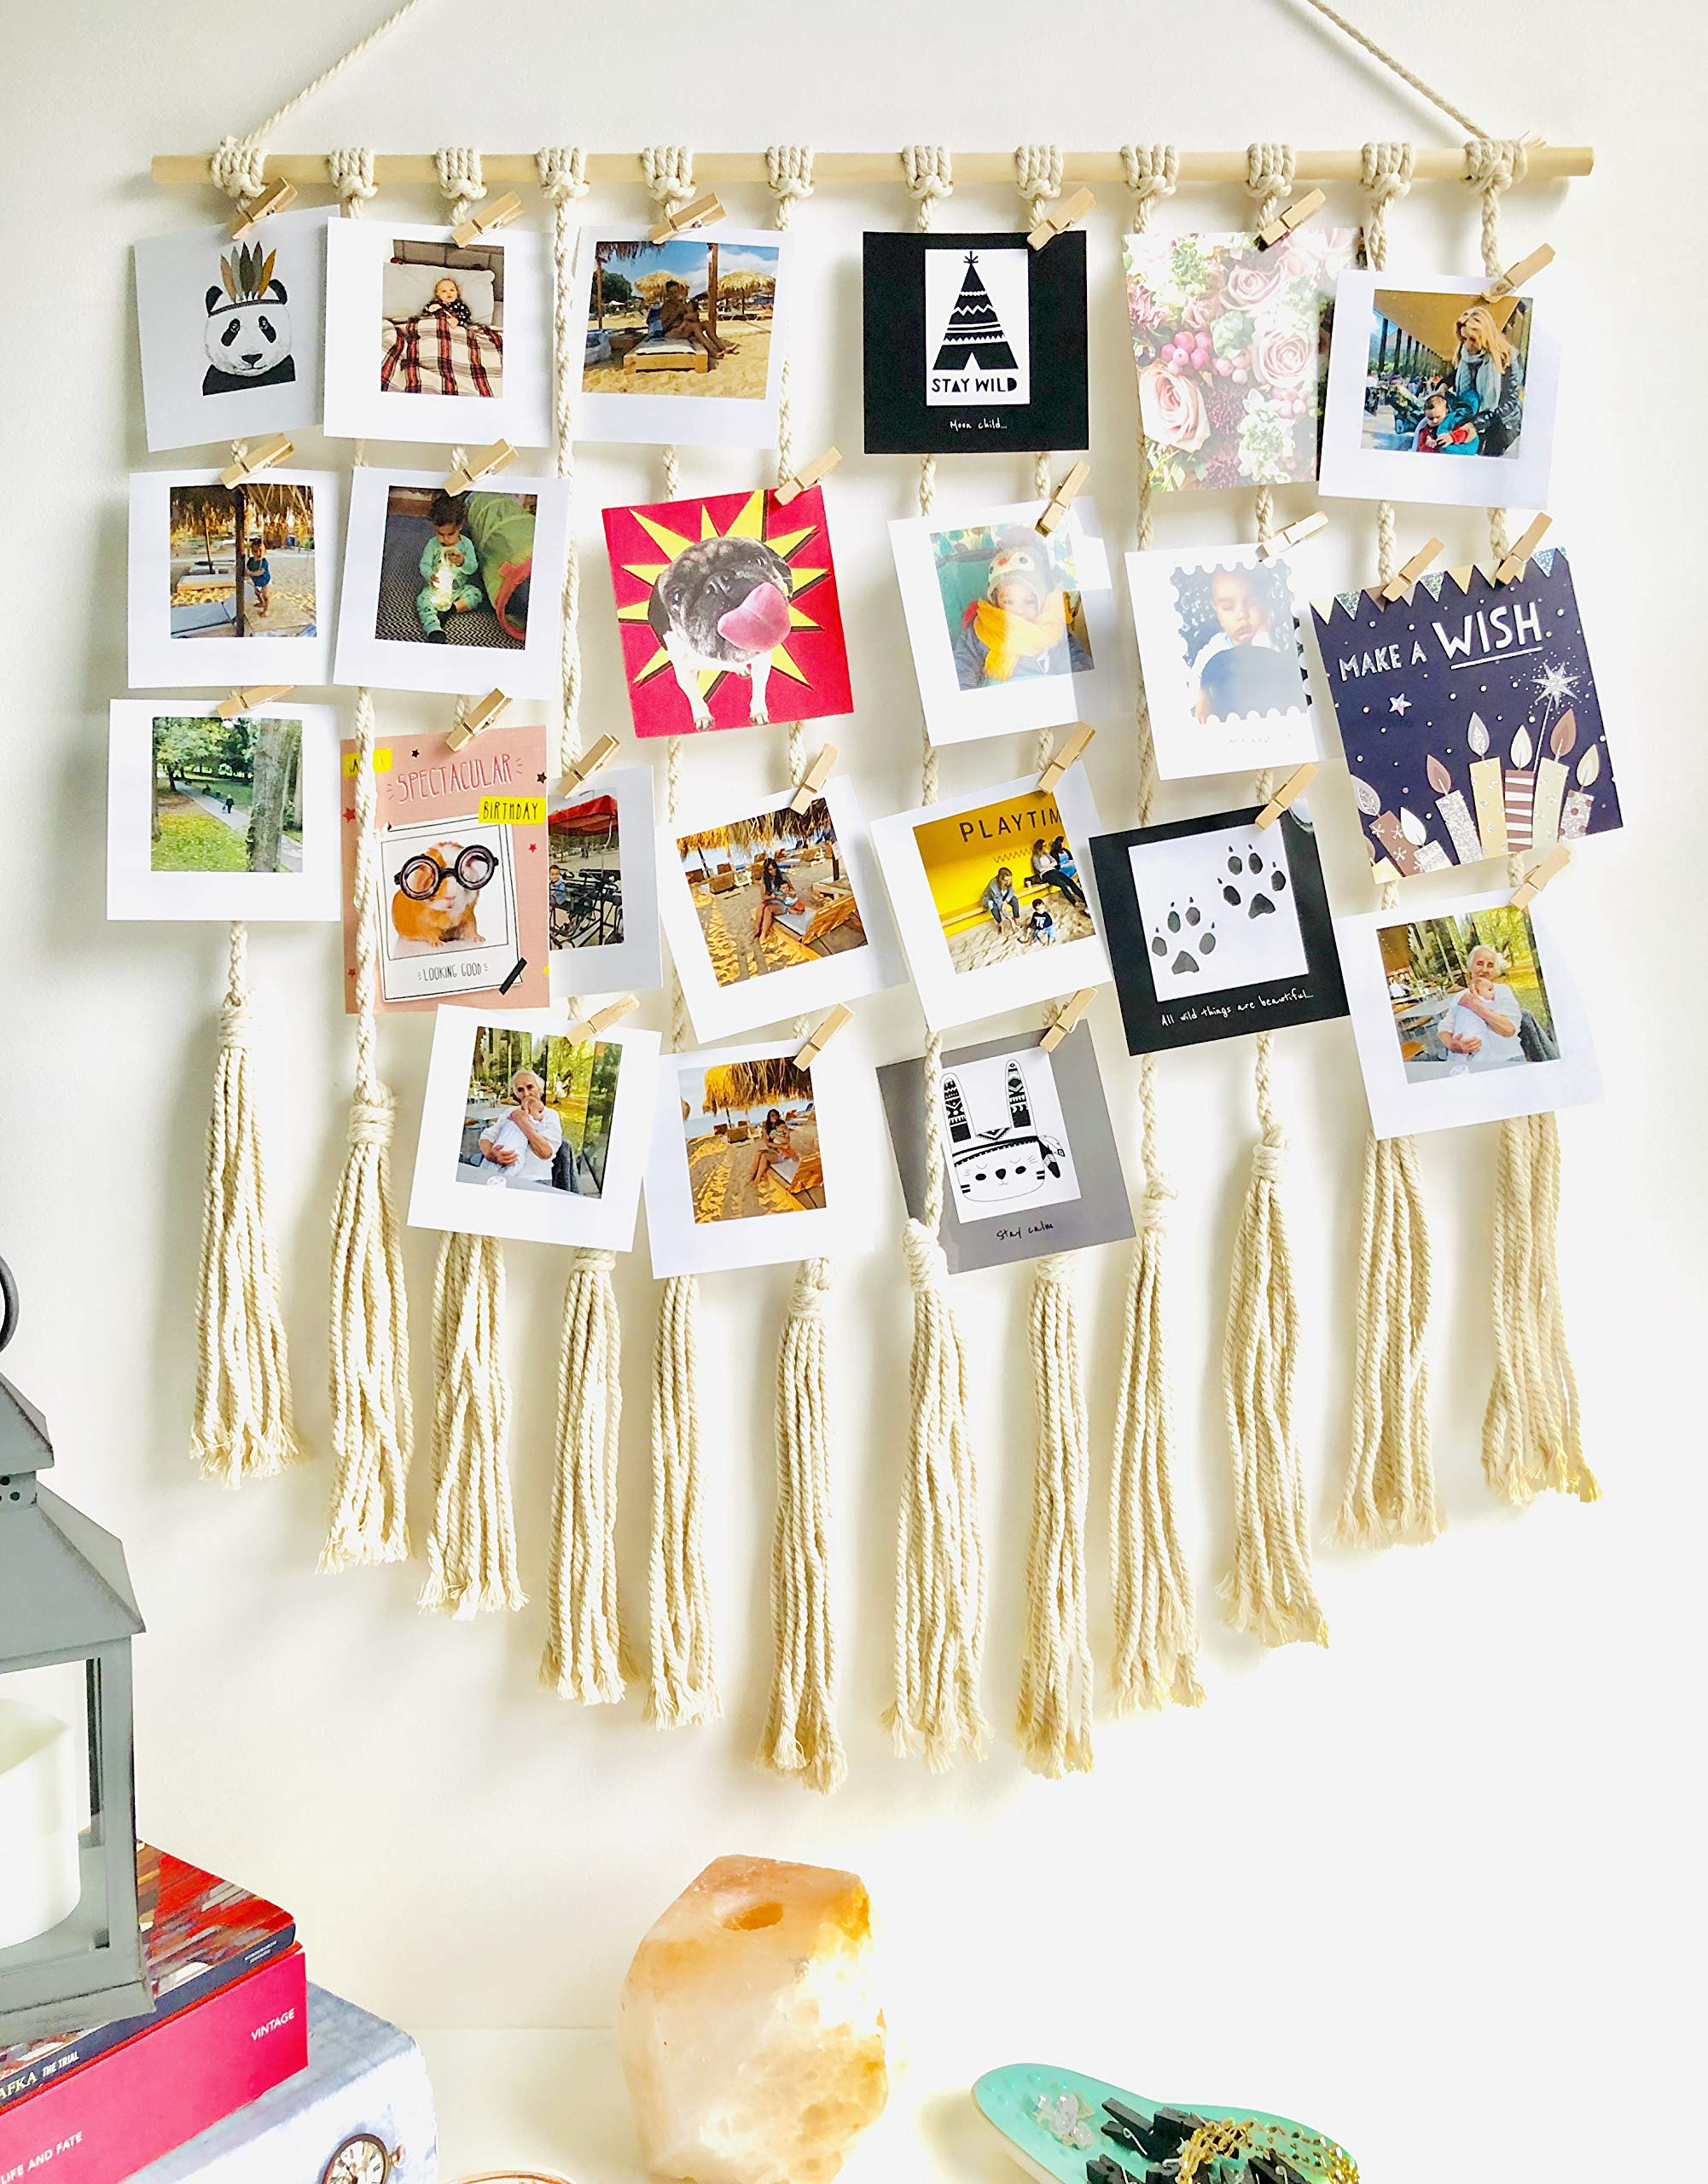 Large Macrame Hanging Photo Display Picture Frames  With 30 Wood Clips Boho Wall Decor For Home, Living Room, Bedroom, Wedding, Ivory